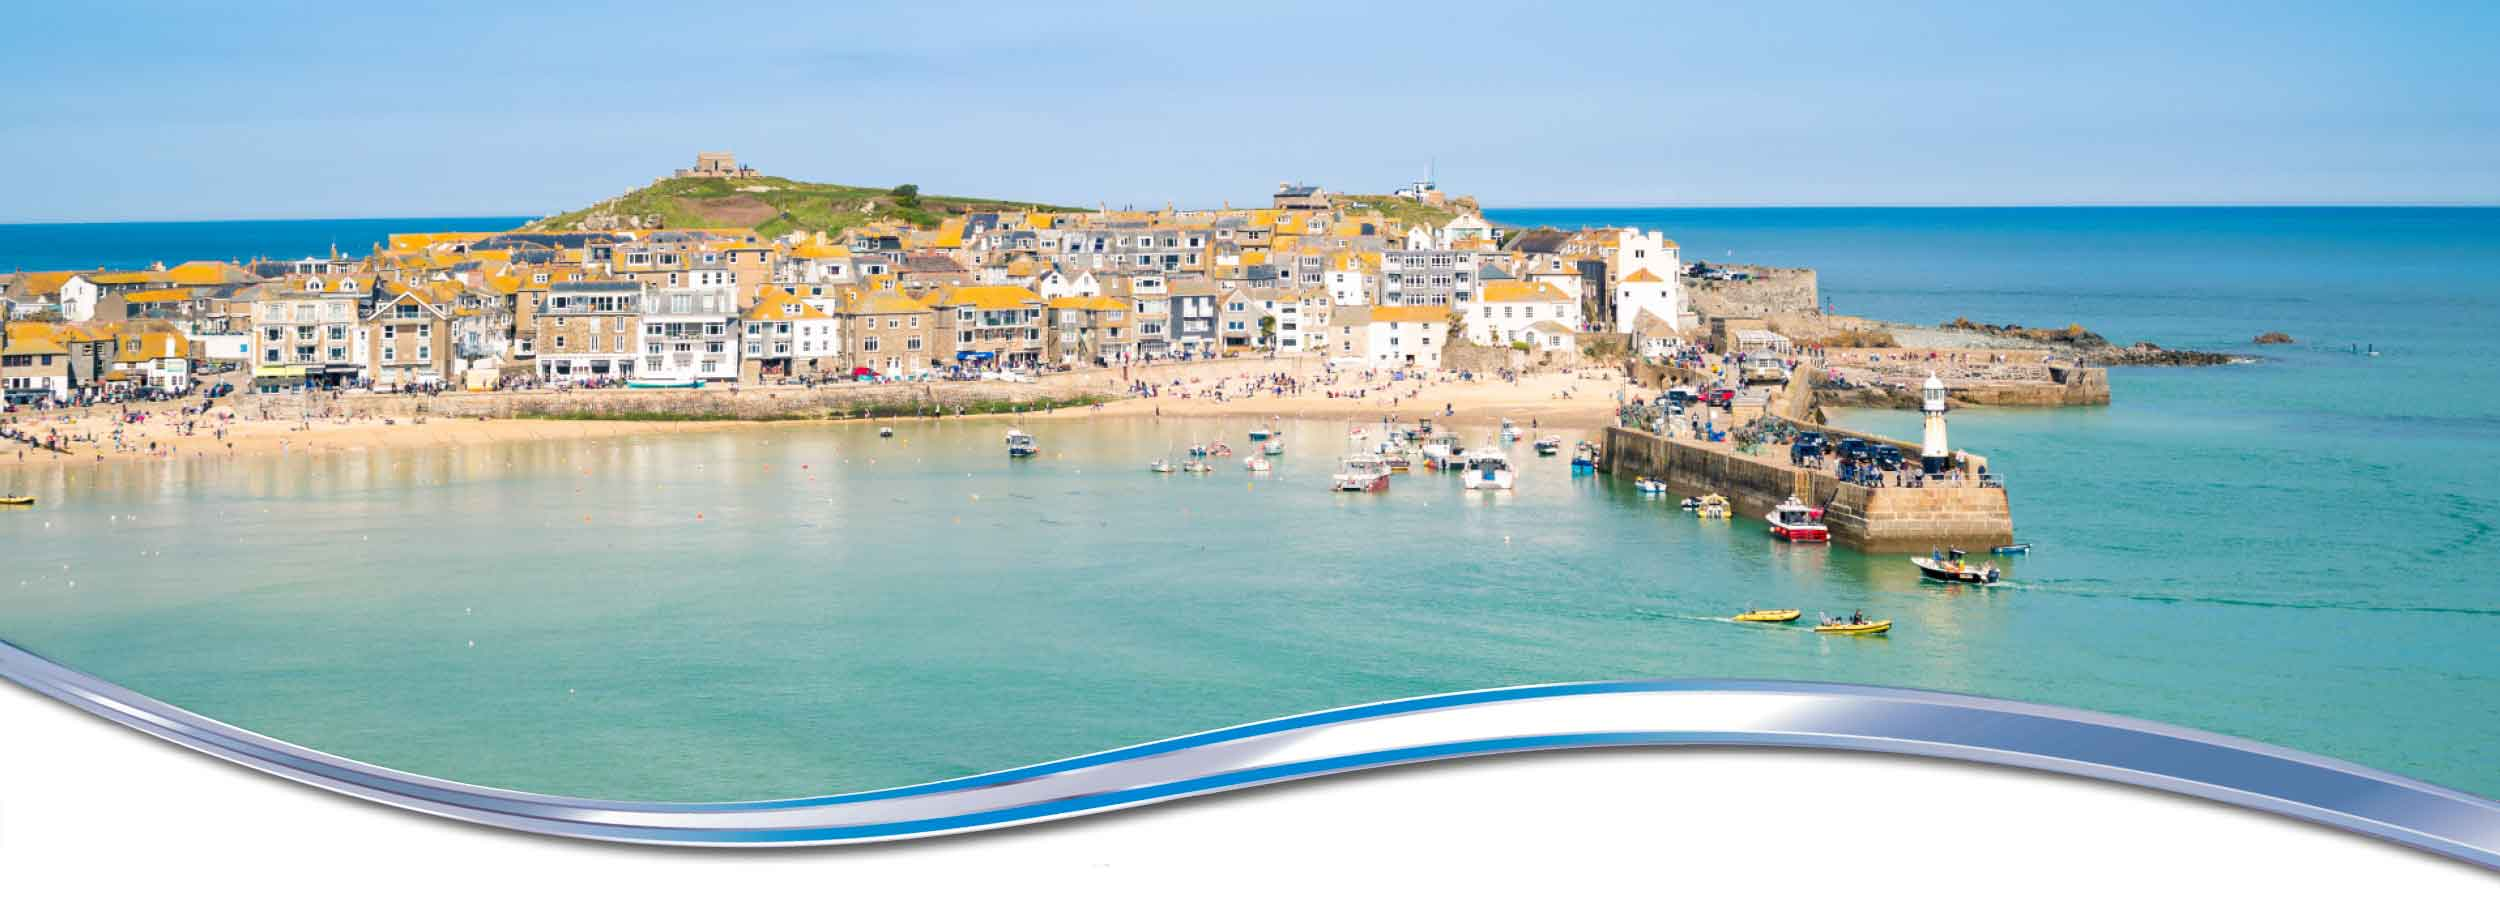 Coach holidays in the West Country, cornwall, Somerset, Dorset, Devon, travel in luxury and comfort with Emjay Tours